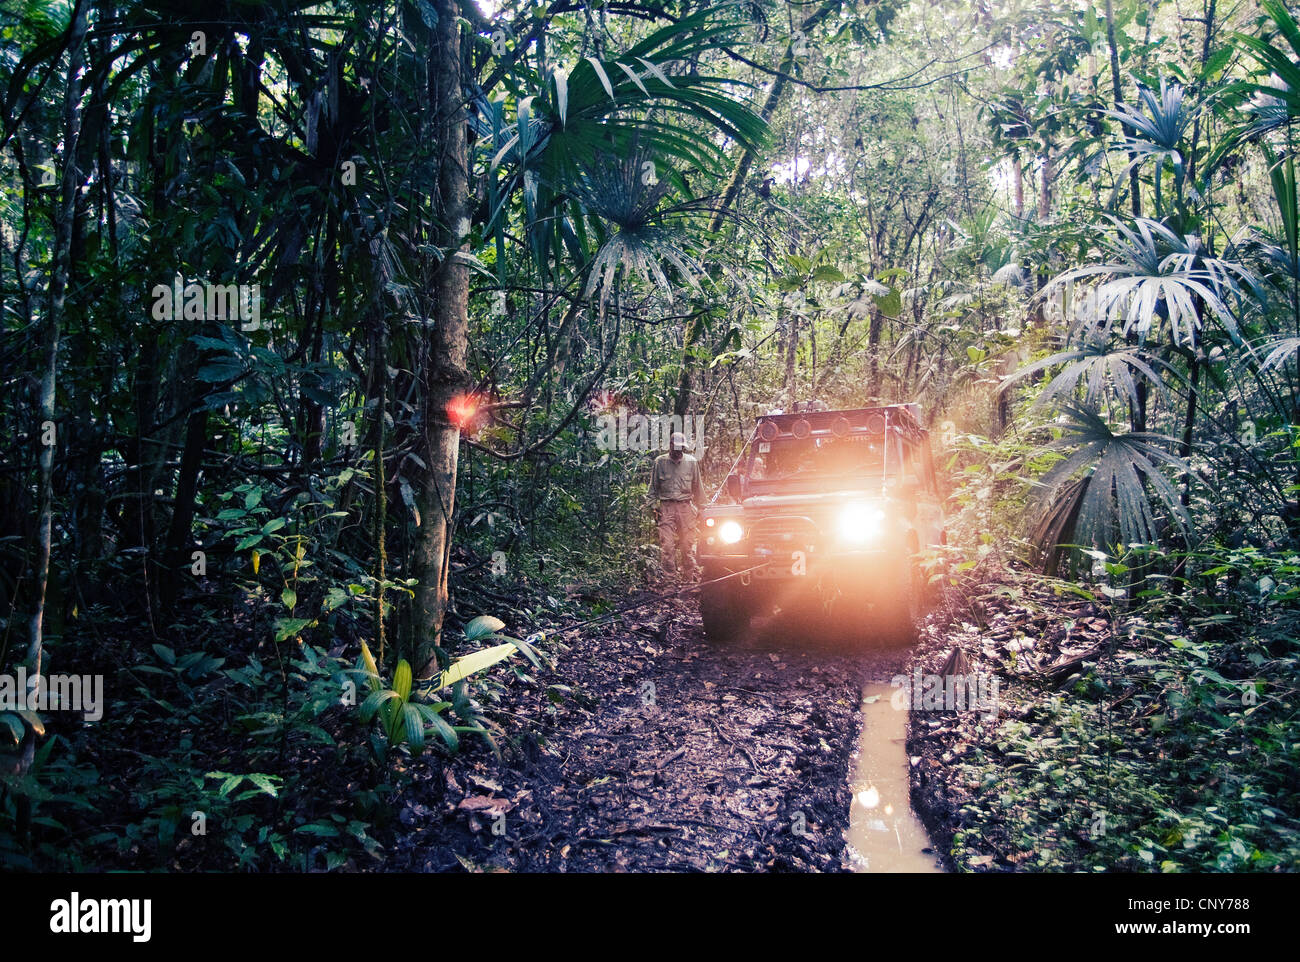 Monkey river trail, Belize - Stock Image